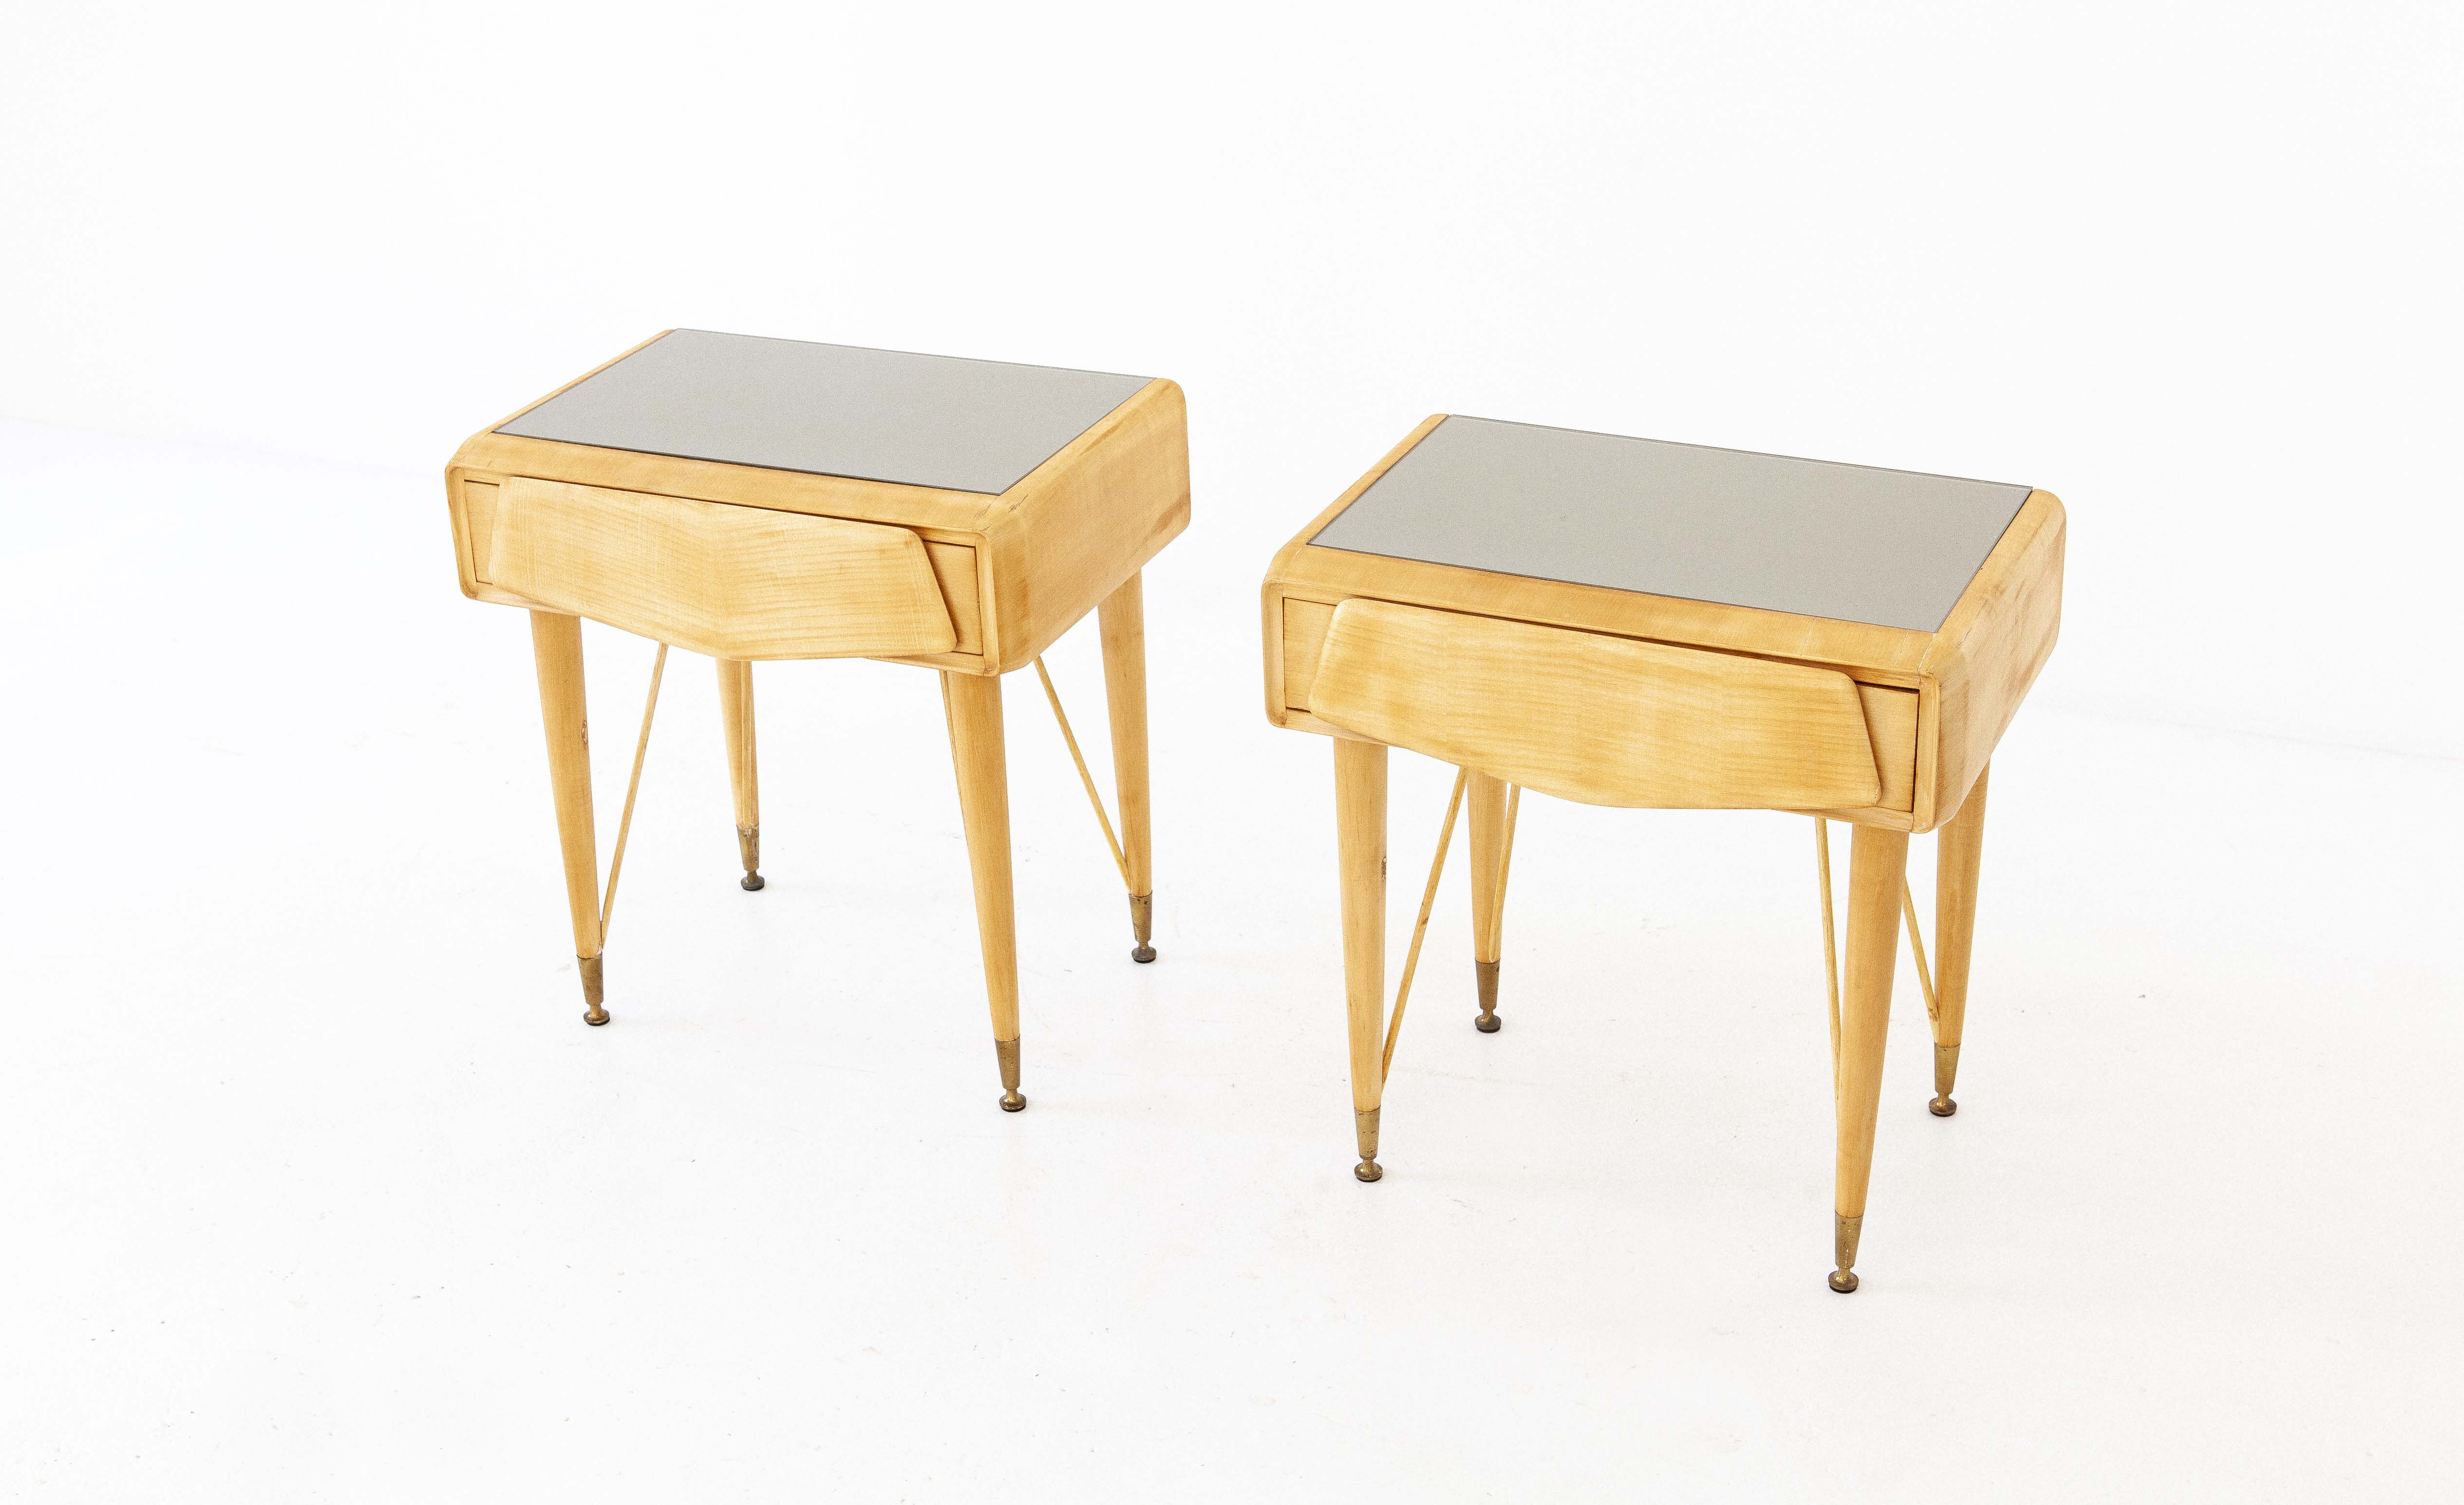 italian-mable-wood-glass-brass-bedside-tables-1-BT77